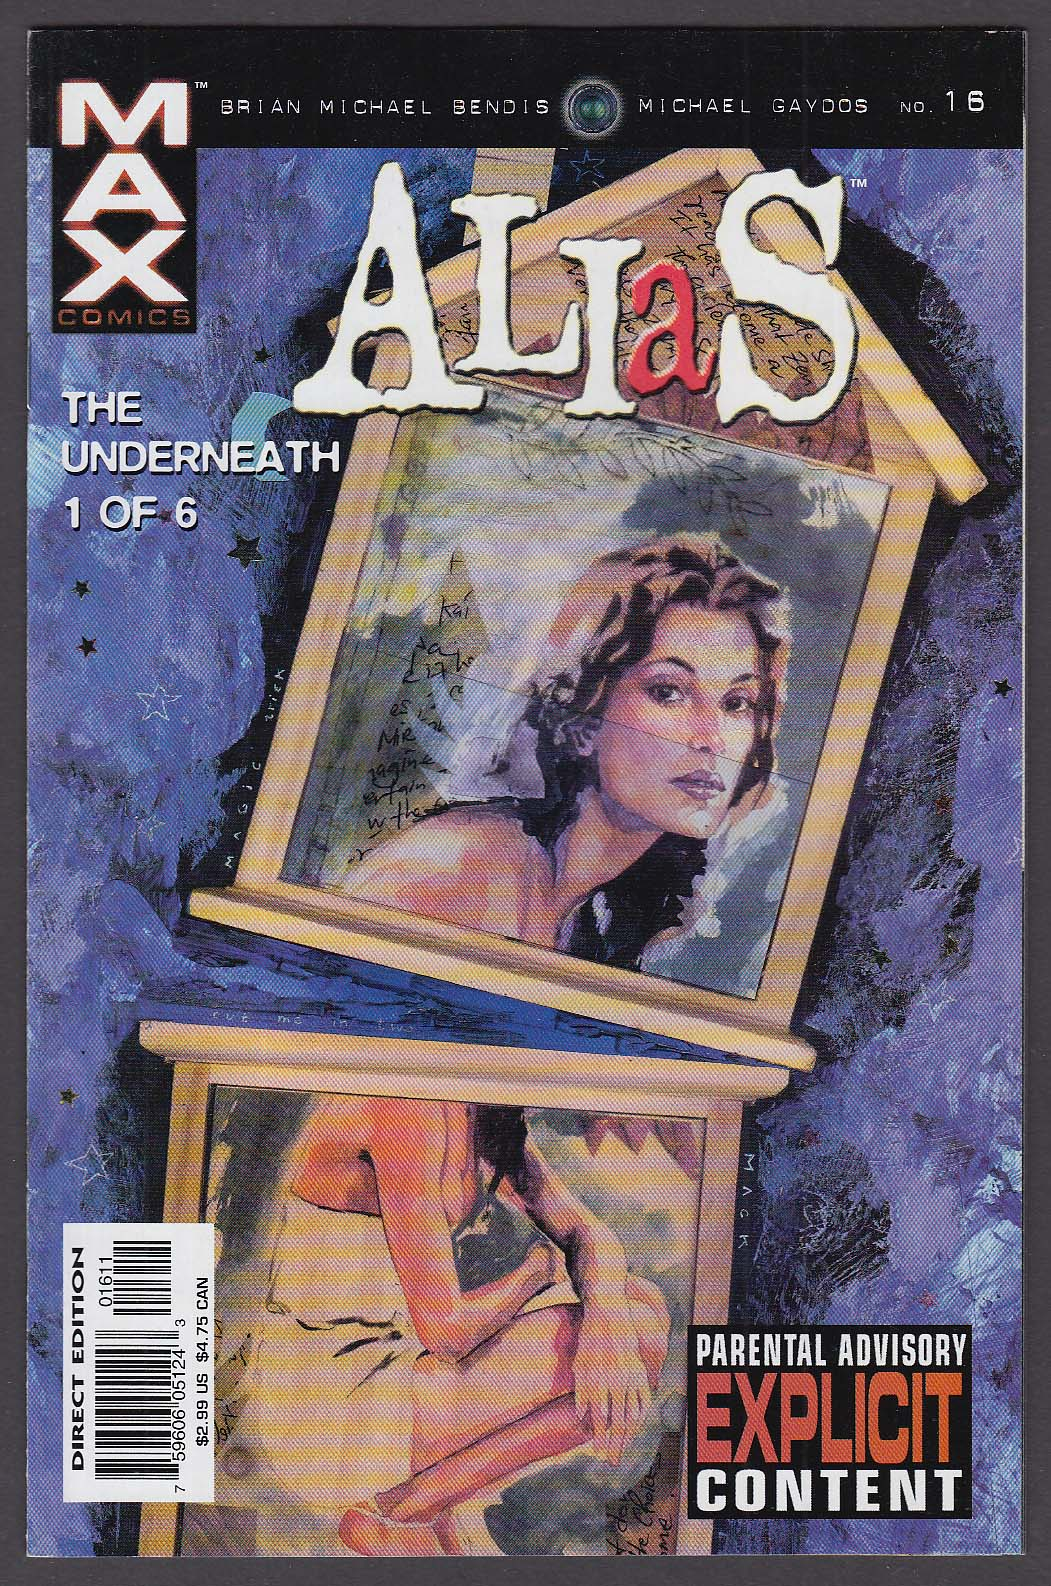 ALIAS #16 Max comic book 1 2003